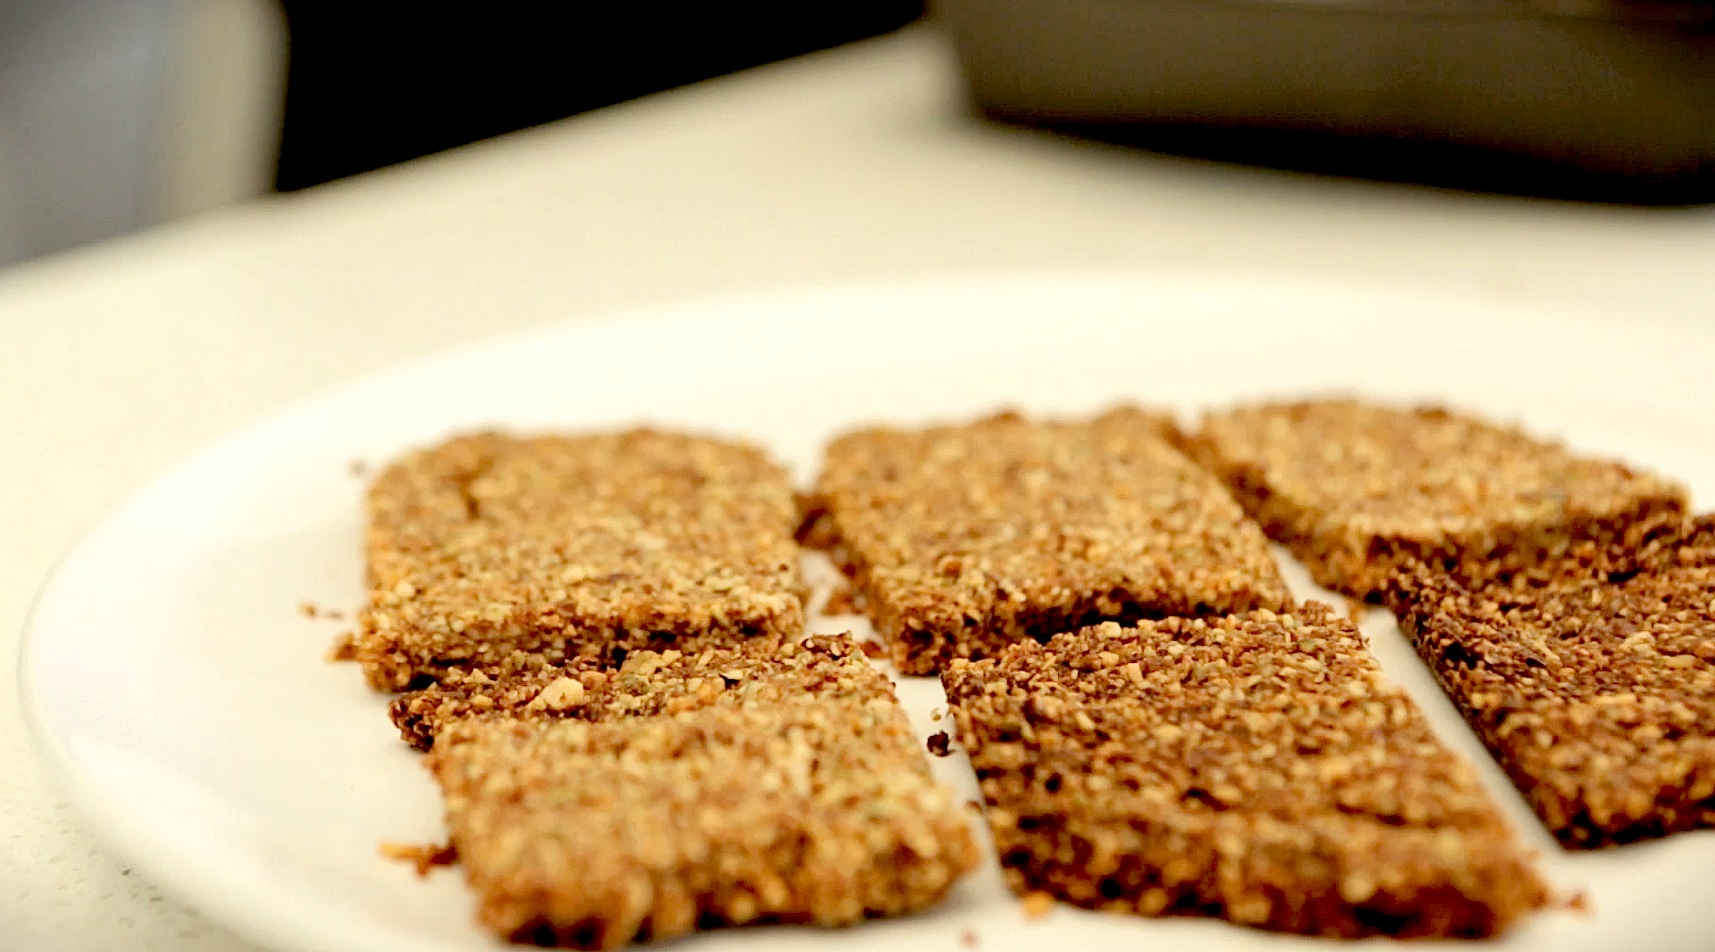 Eat Like a Caveman With This Paleo Granola Bars Recipe